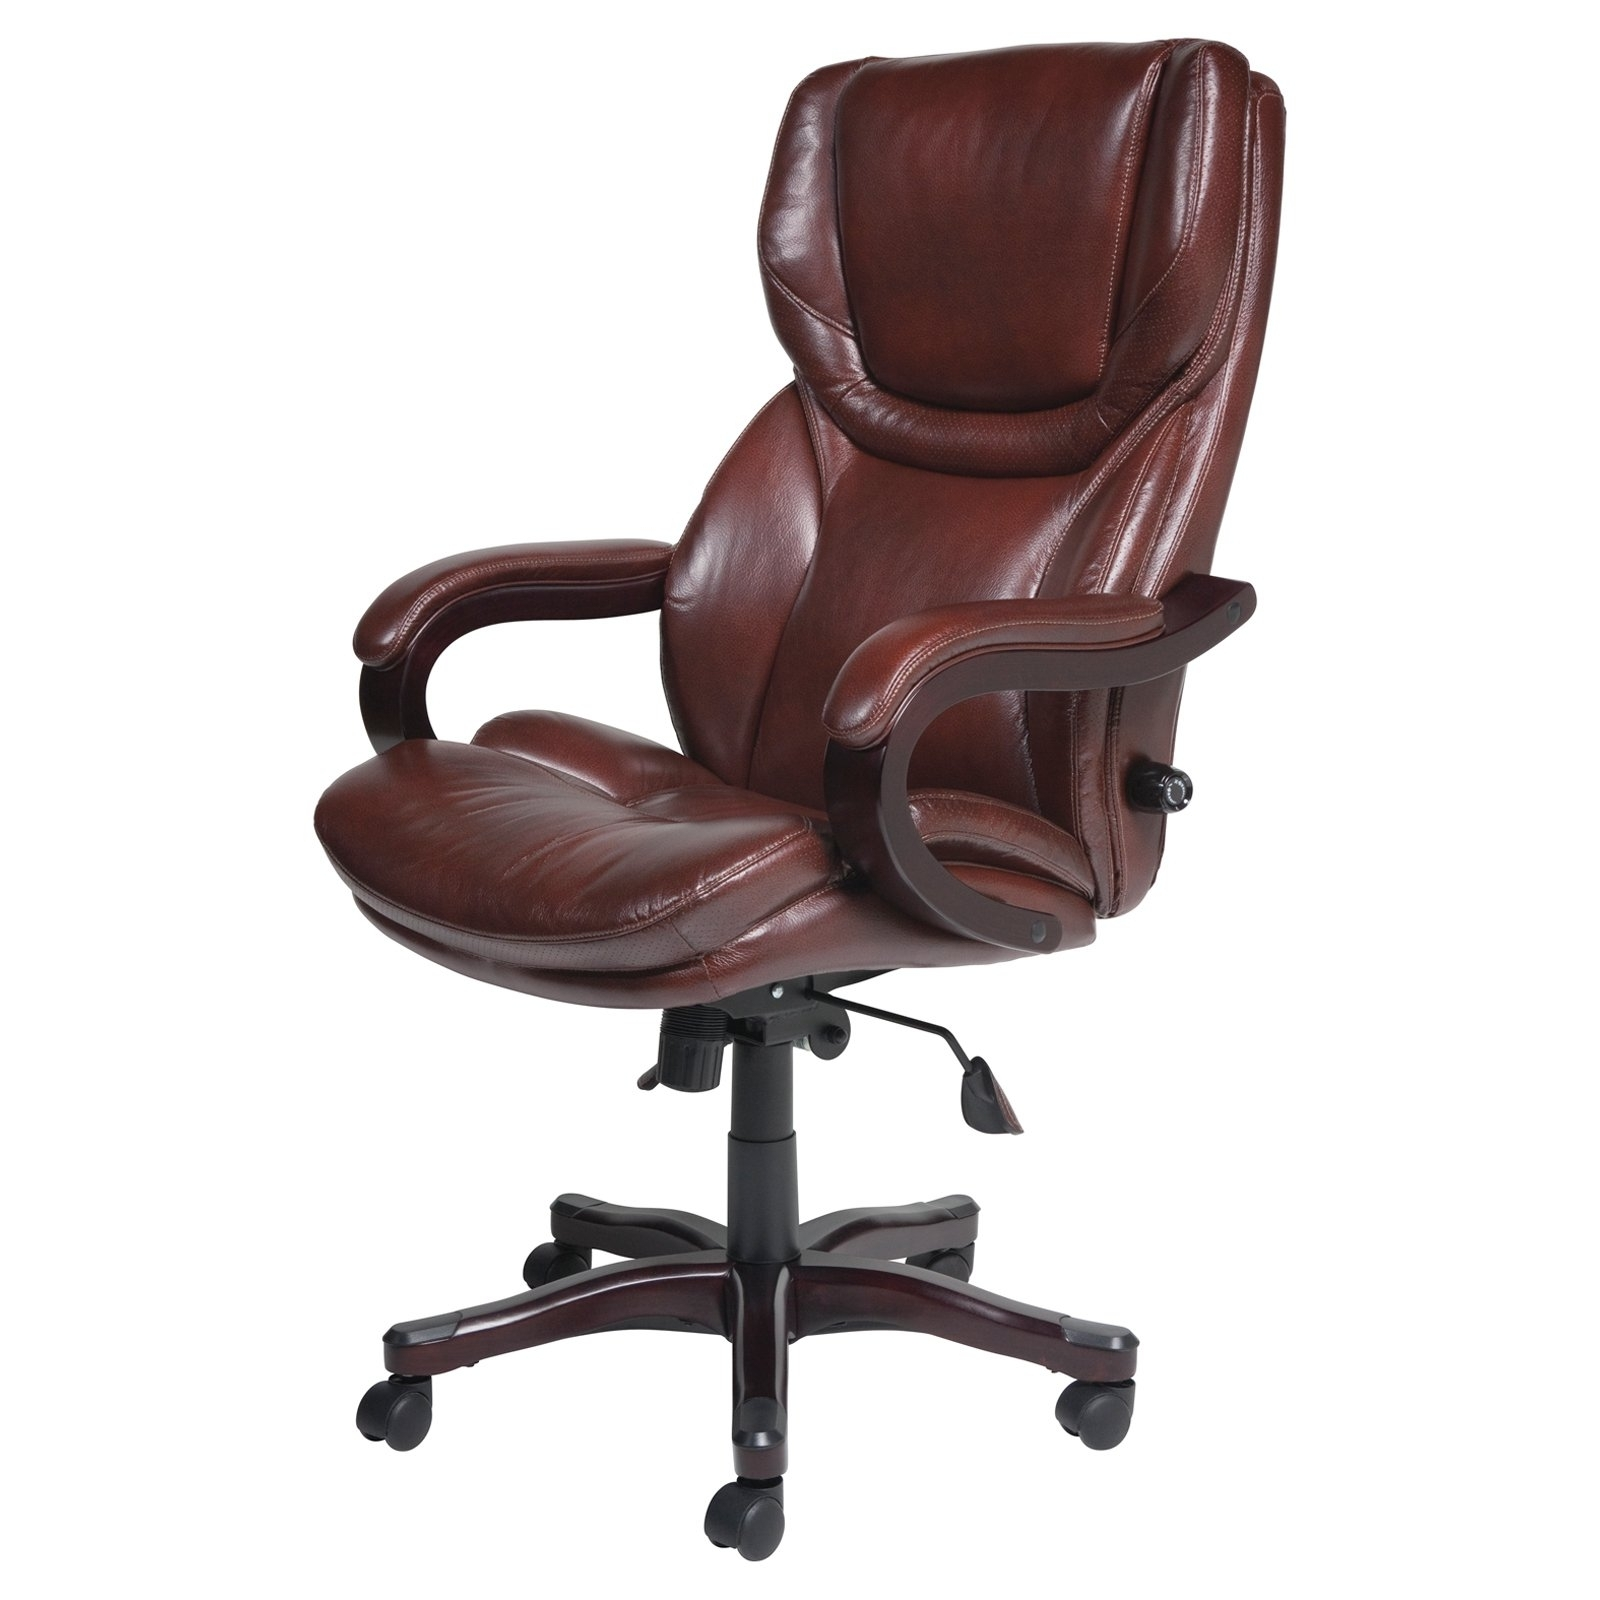 Chair : Ergonomic Black Leather Executive Office Chair Verona For Most Current Unique Executive Office Chairs (View 7 of 20)